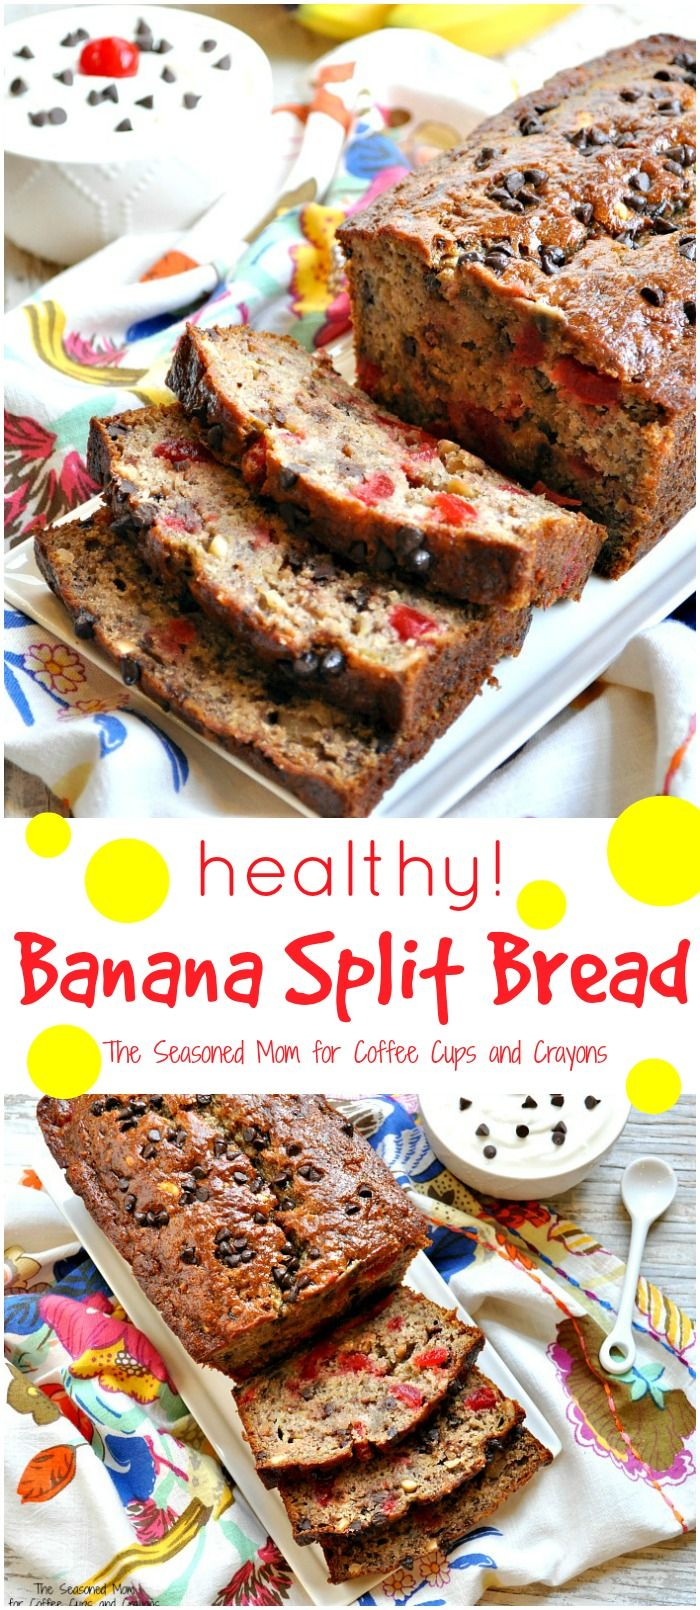 All of the delicious components of your favorite Banana Split dessert in one healthy breakfast, snack, or light treat! It's an easy make-ahead option that the entire family will love.